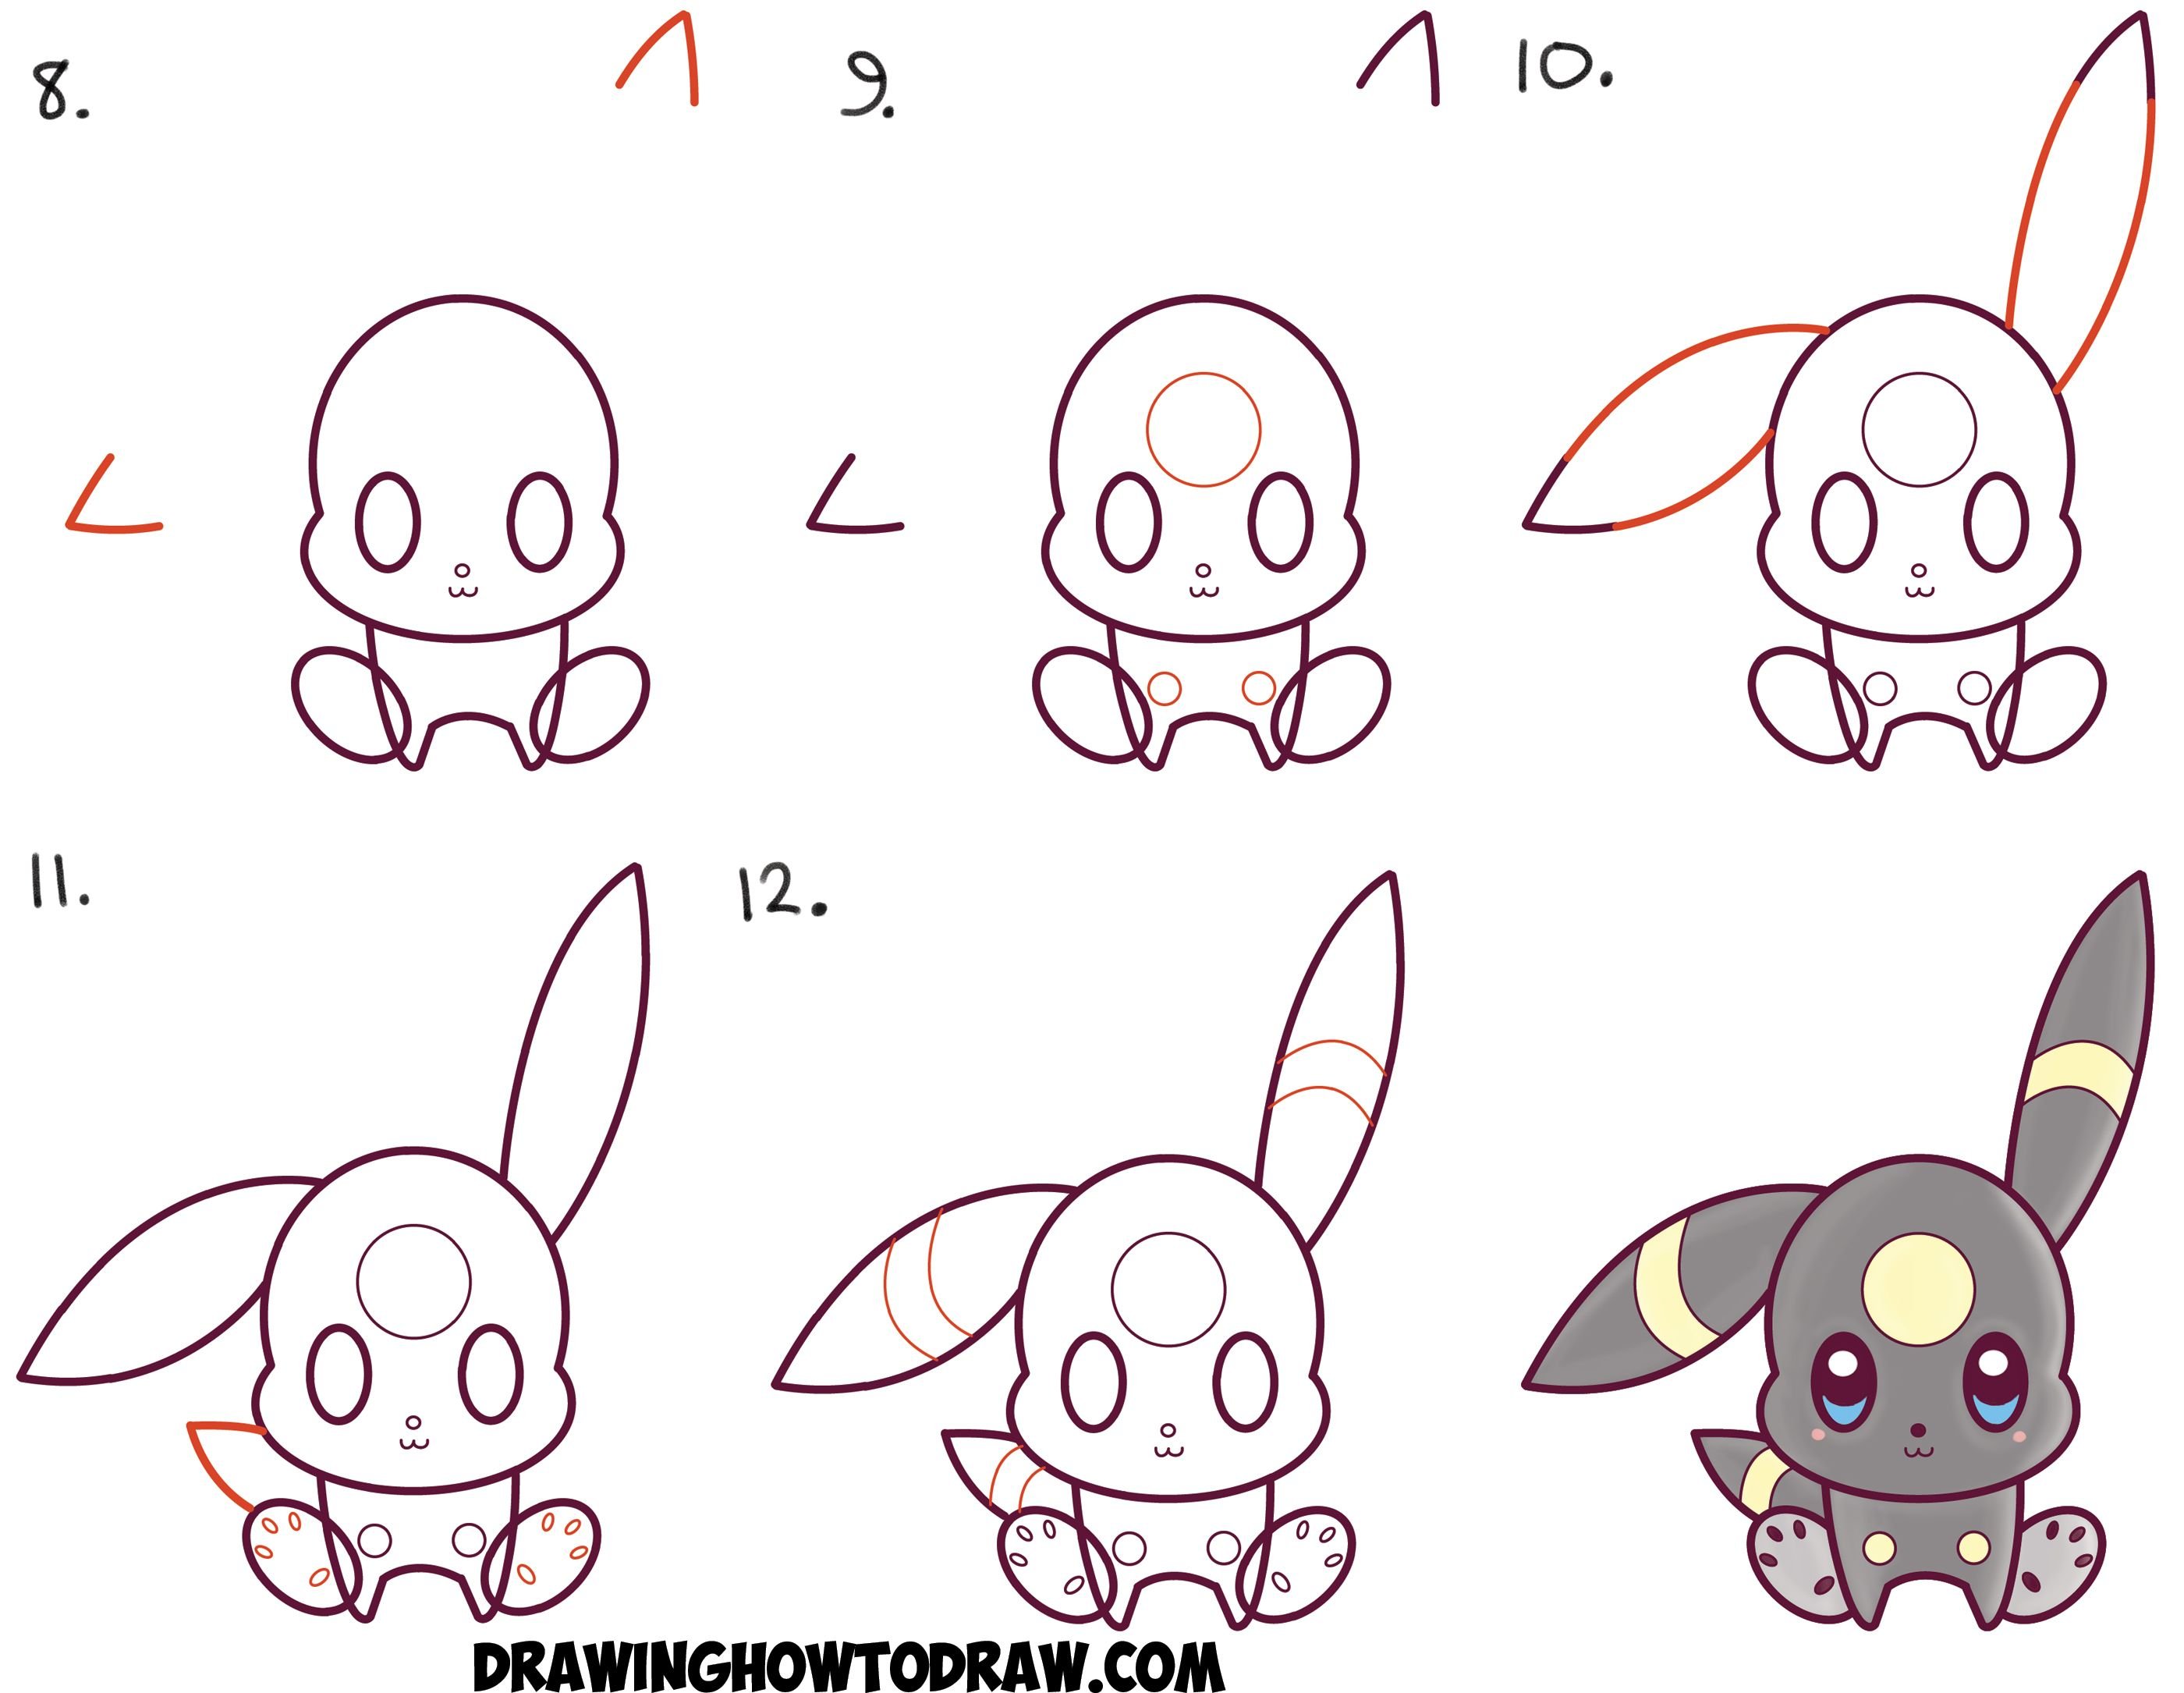 Uncategorized Pokemon That Are Easy To Draw how to draw cute kawaii chibi umbreon from pokemon easy step by drawing tutorial for kids chibis pinterest k